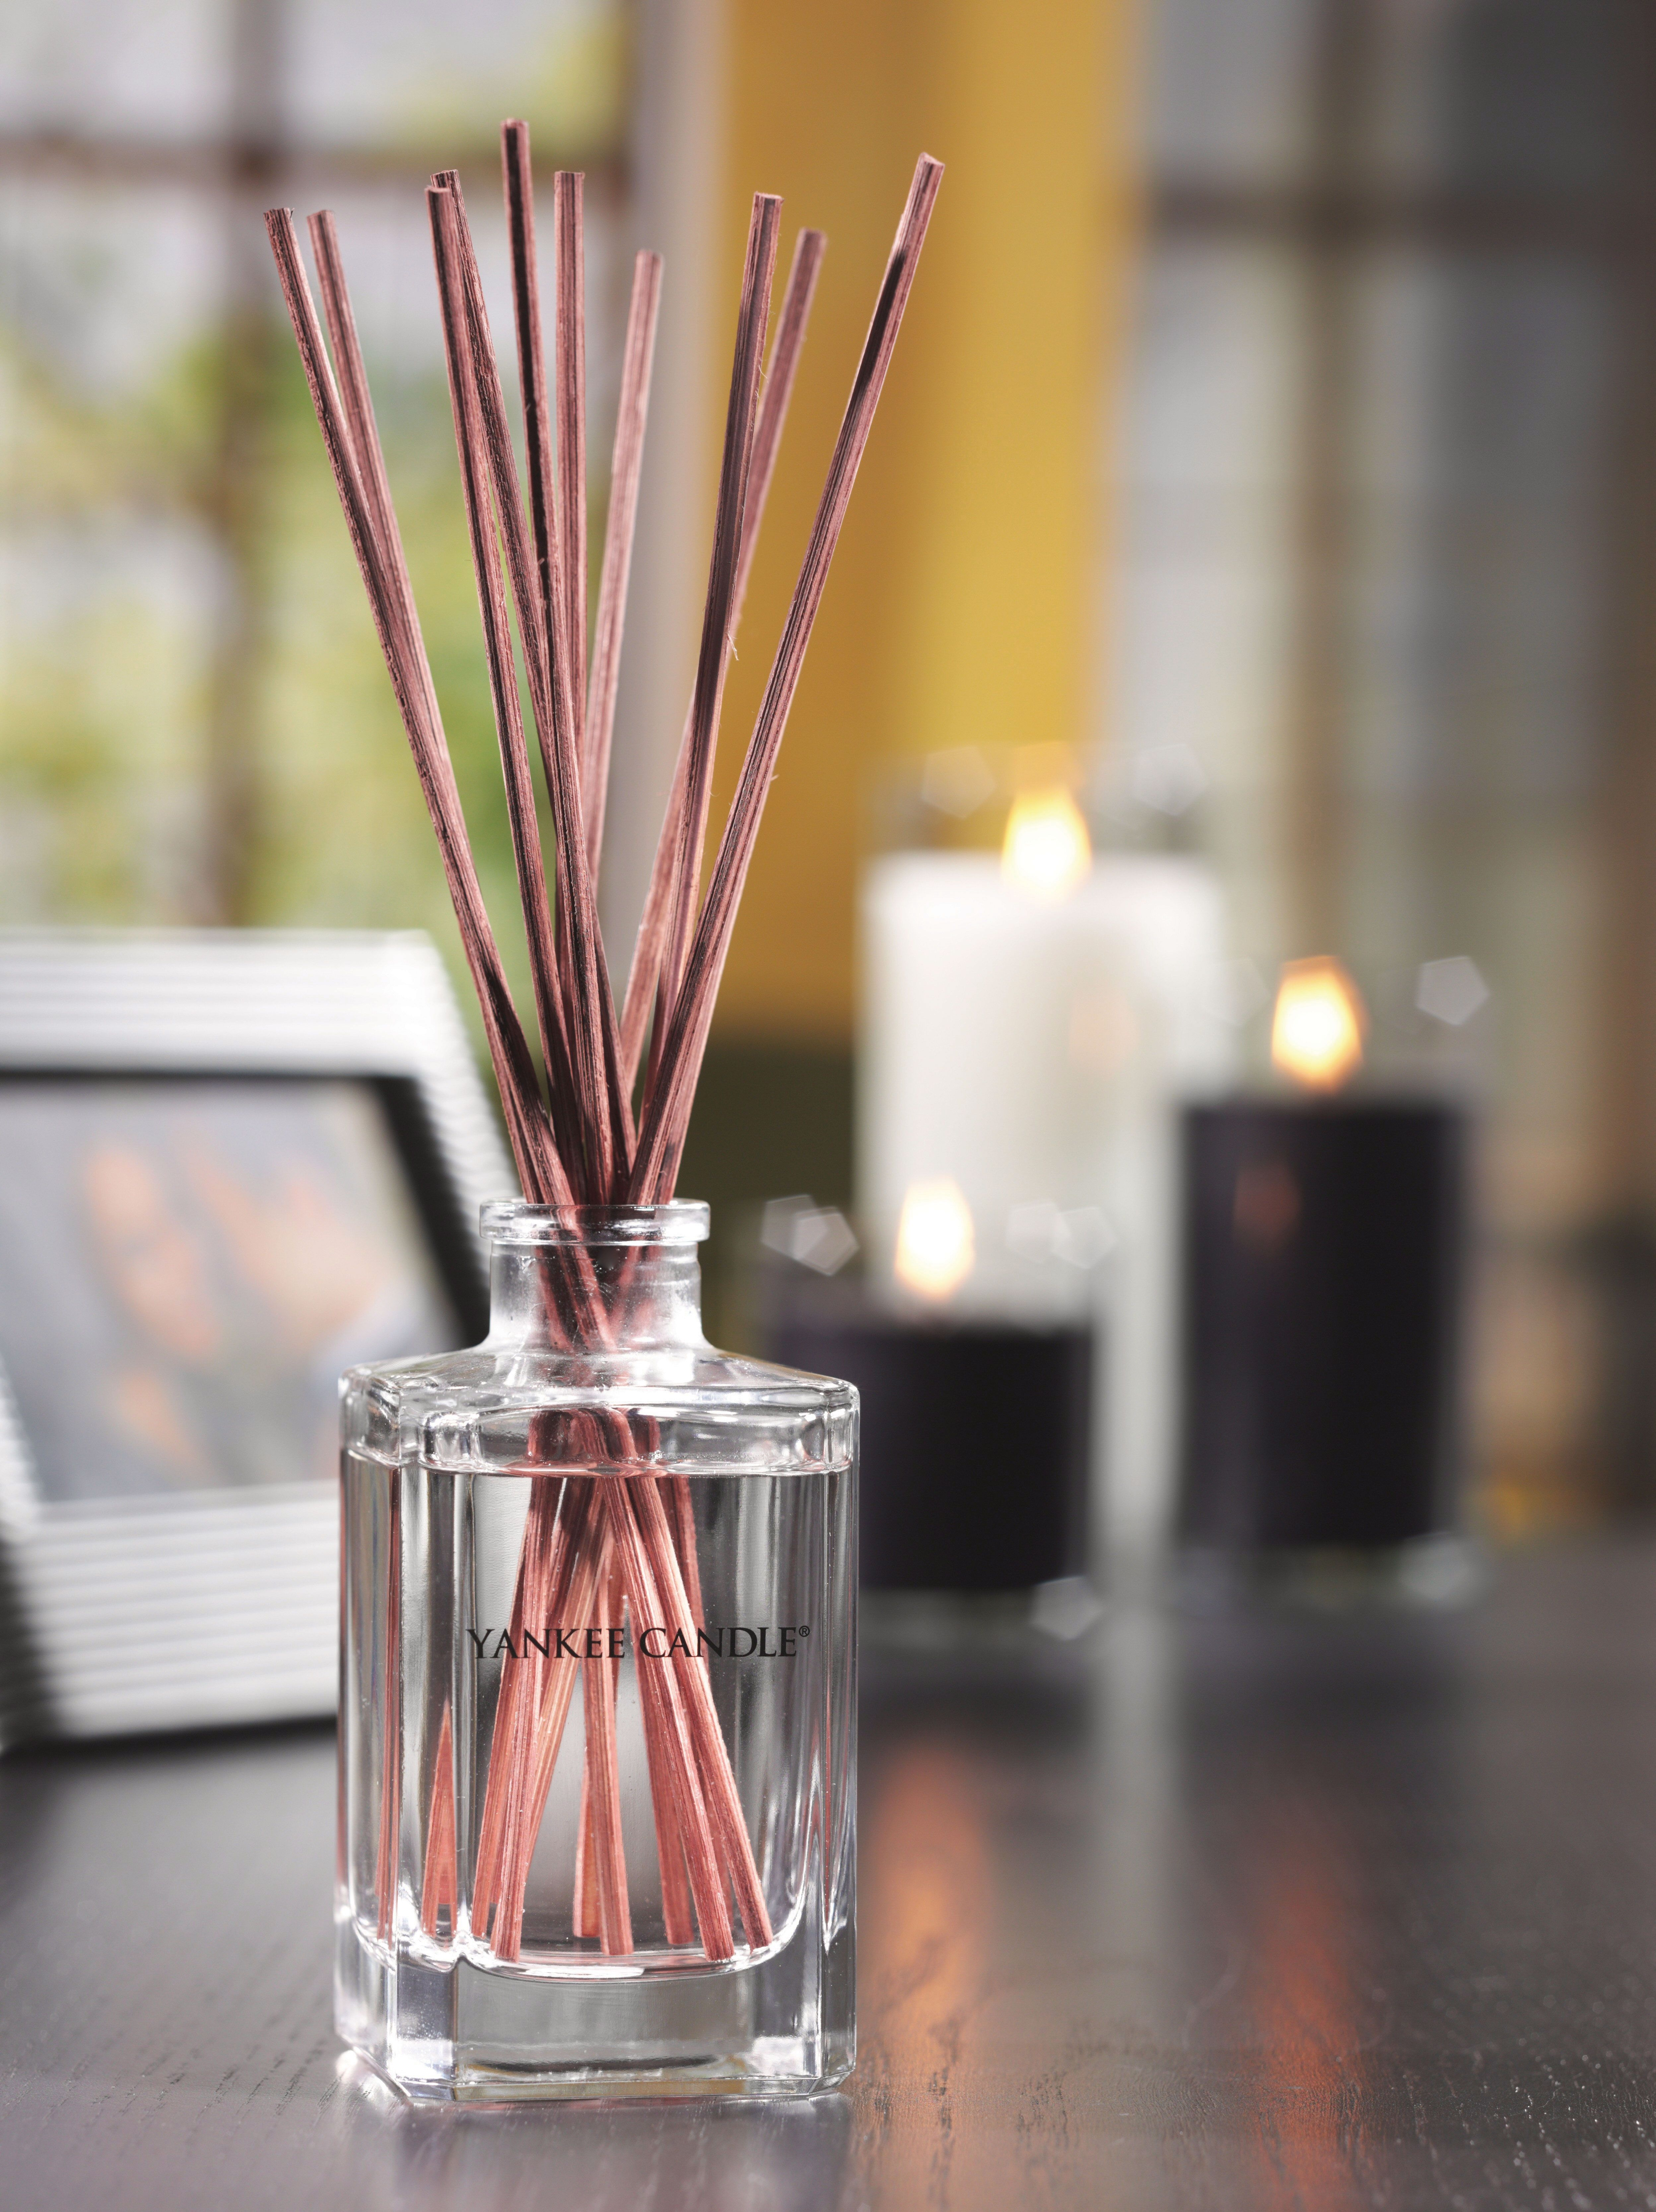 Yankee candle decor reed diffuser for Decorative diffuser